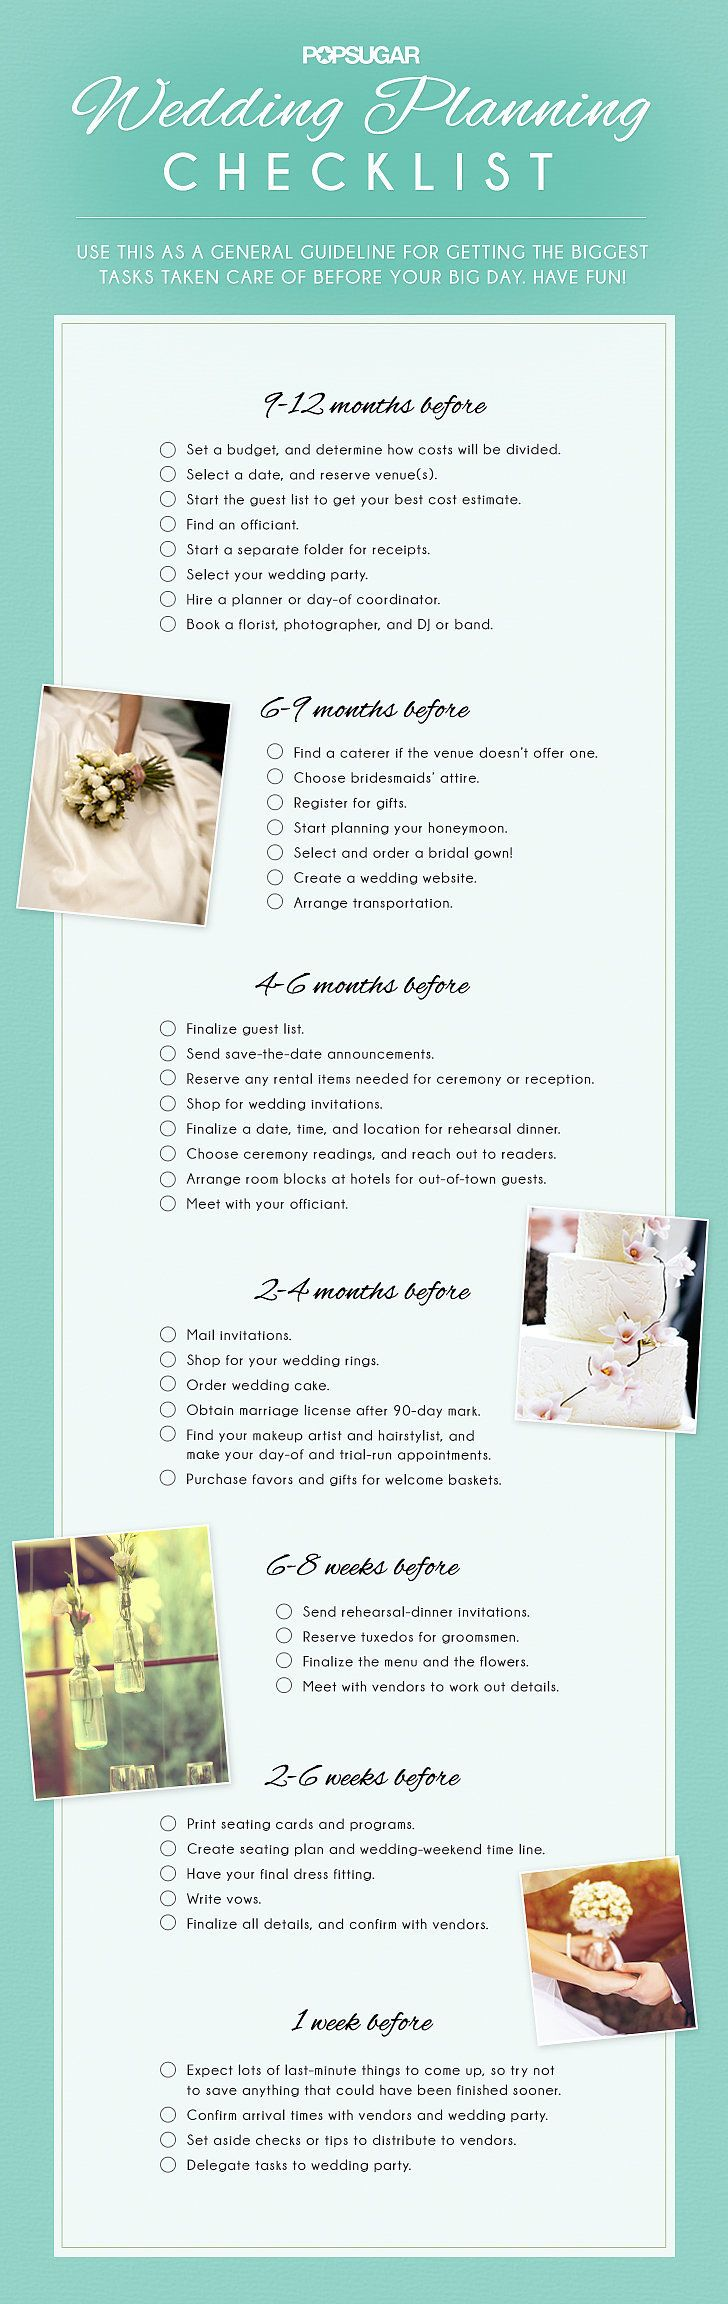 Juggling our everyday lives with wedding planning can be quite a struggle, but you can enjoy the planning process more when you're organized!